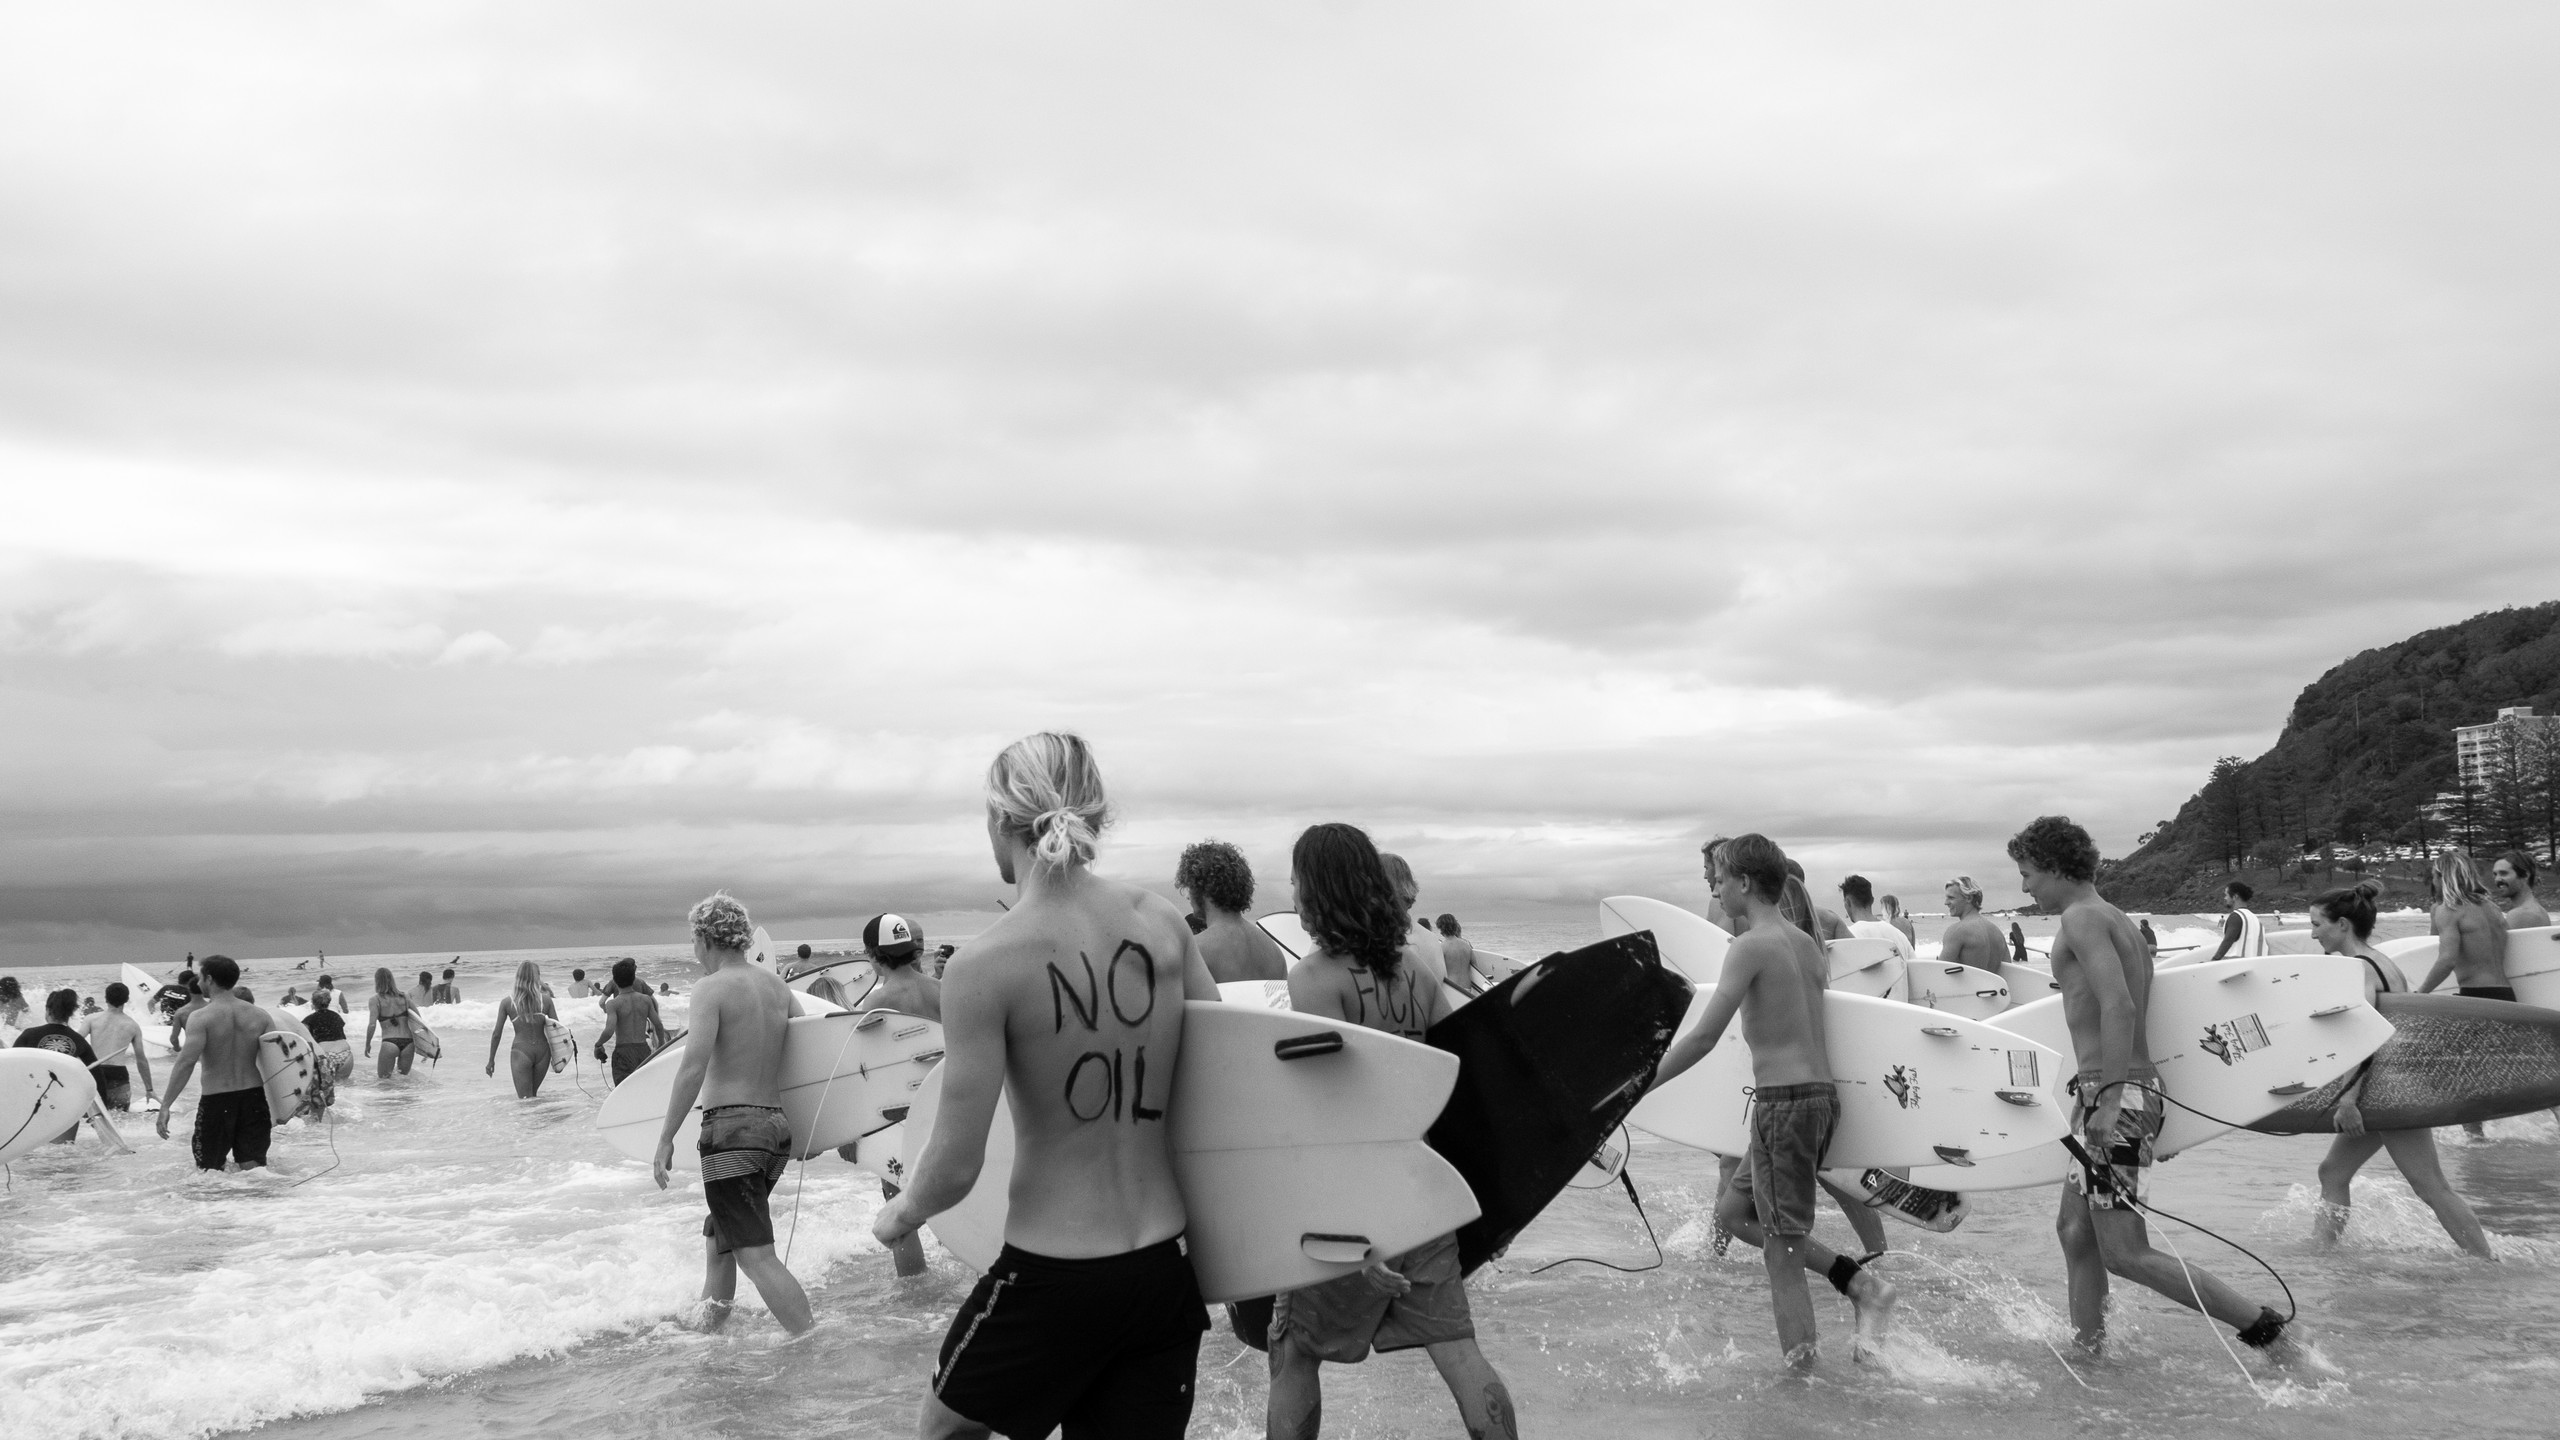 Gold Coast Ocean protectors, protesting against oil drilling in the Great Australian Bight.